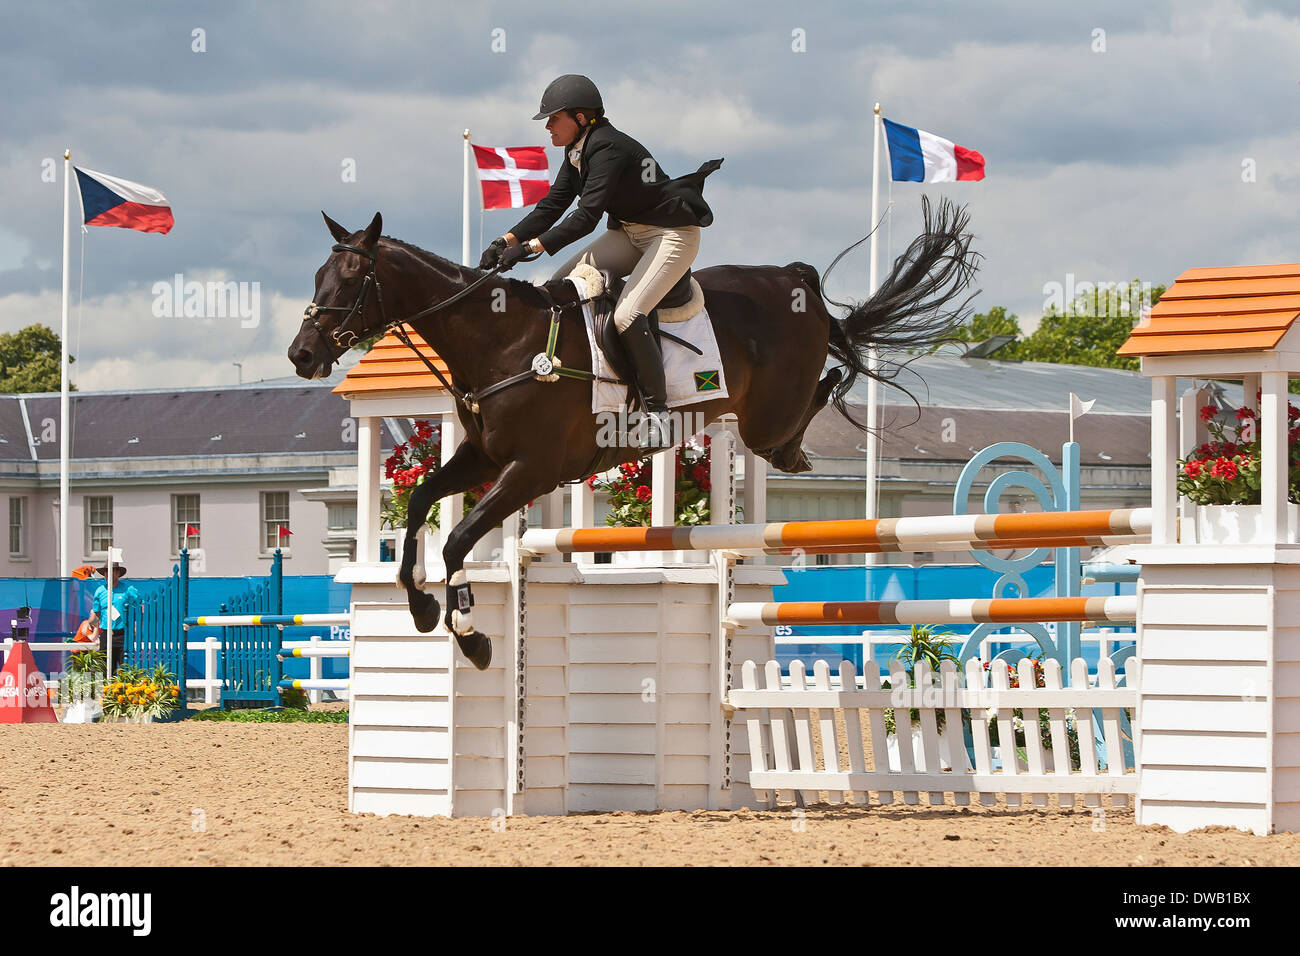 Parallel Oxer High Resolution Stock Photography And Images Alamy